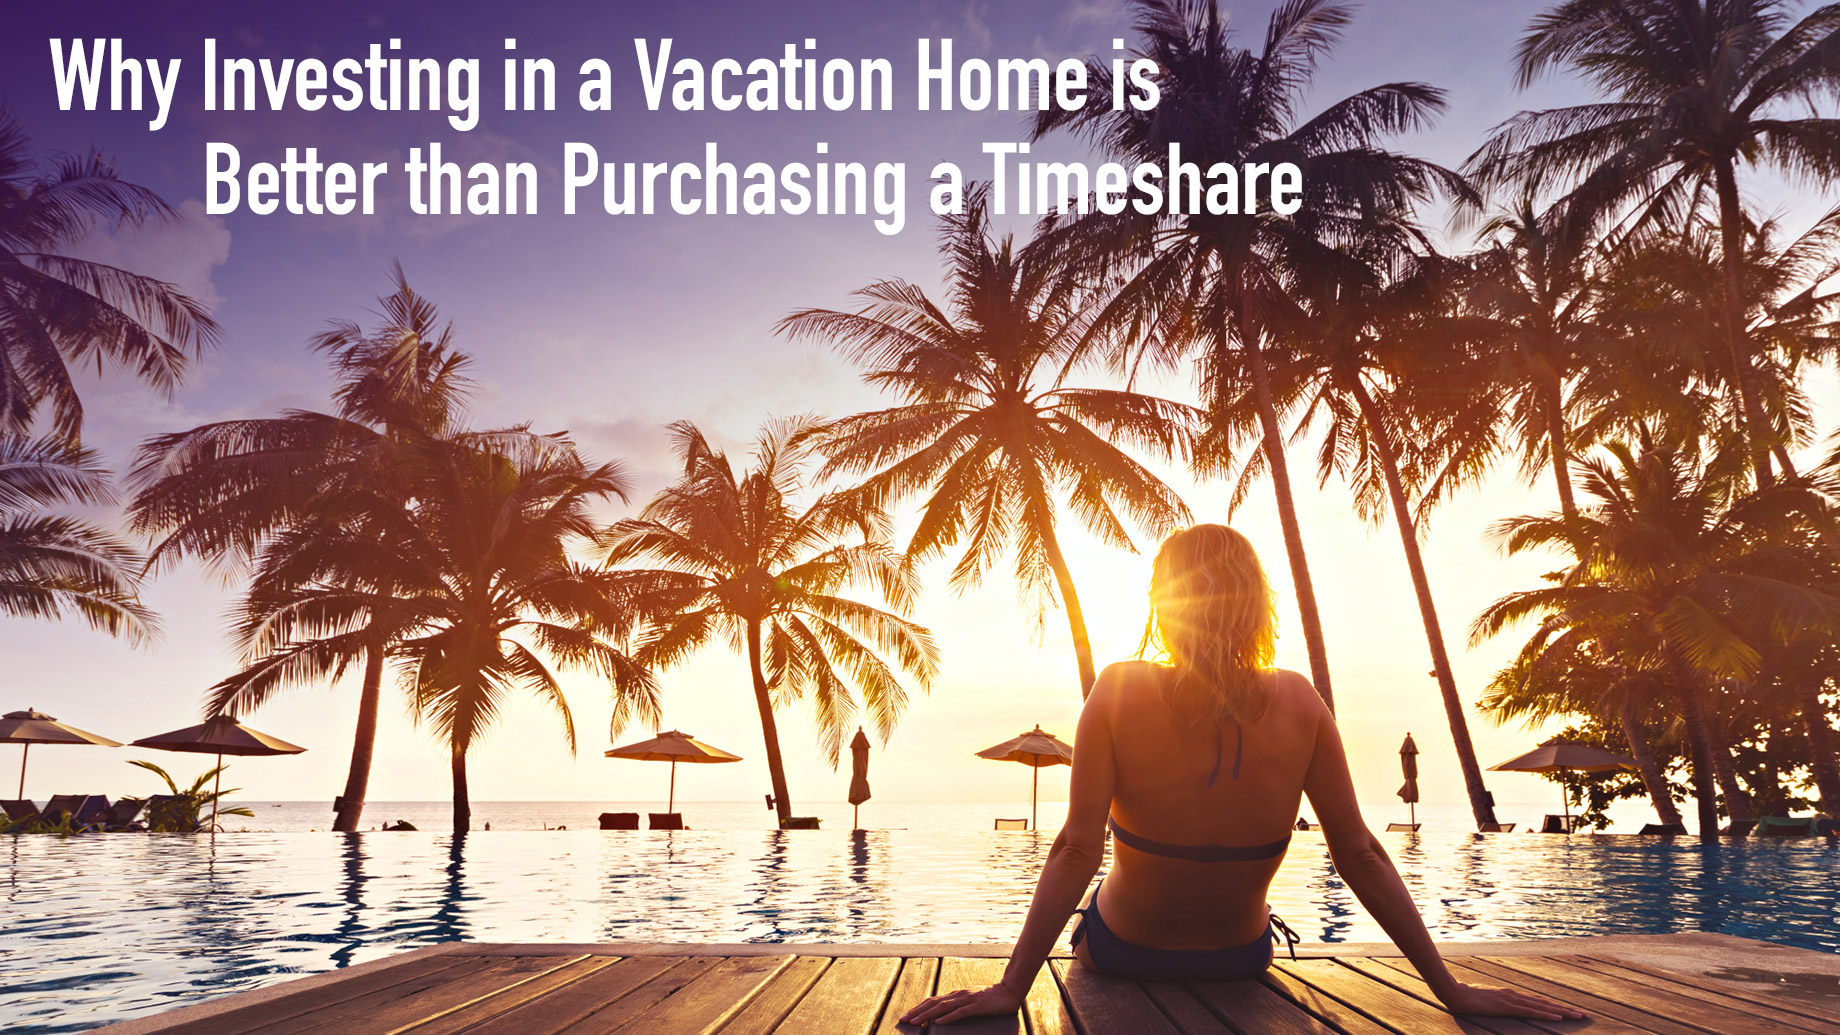 Why Investing in a Vacation Home is Better than Purchasing a Timeshare